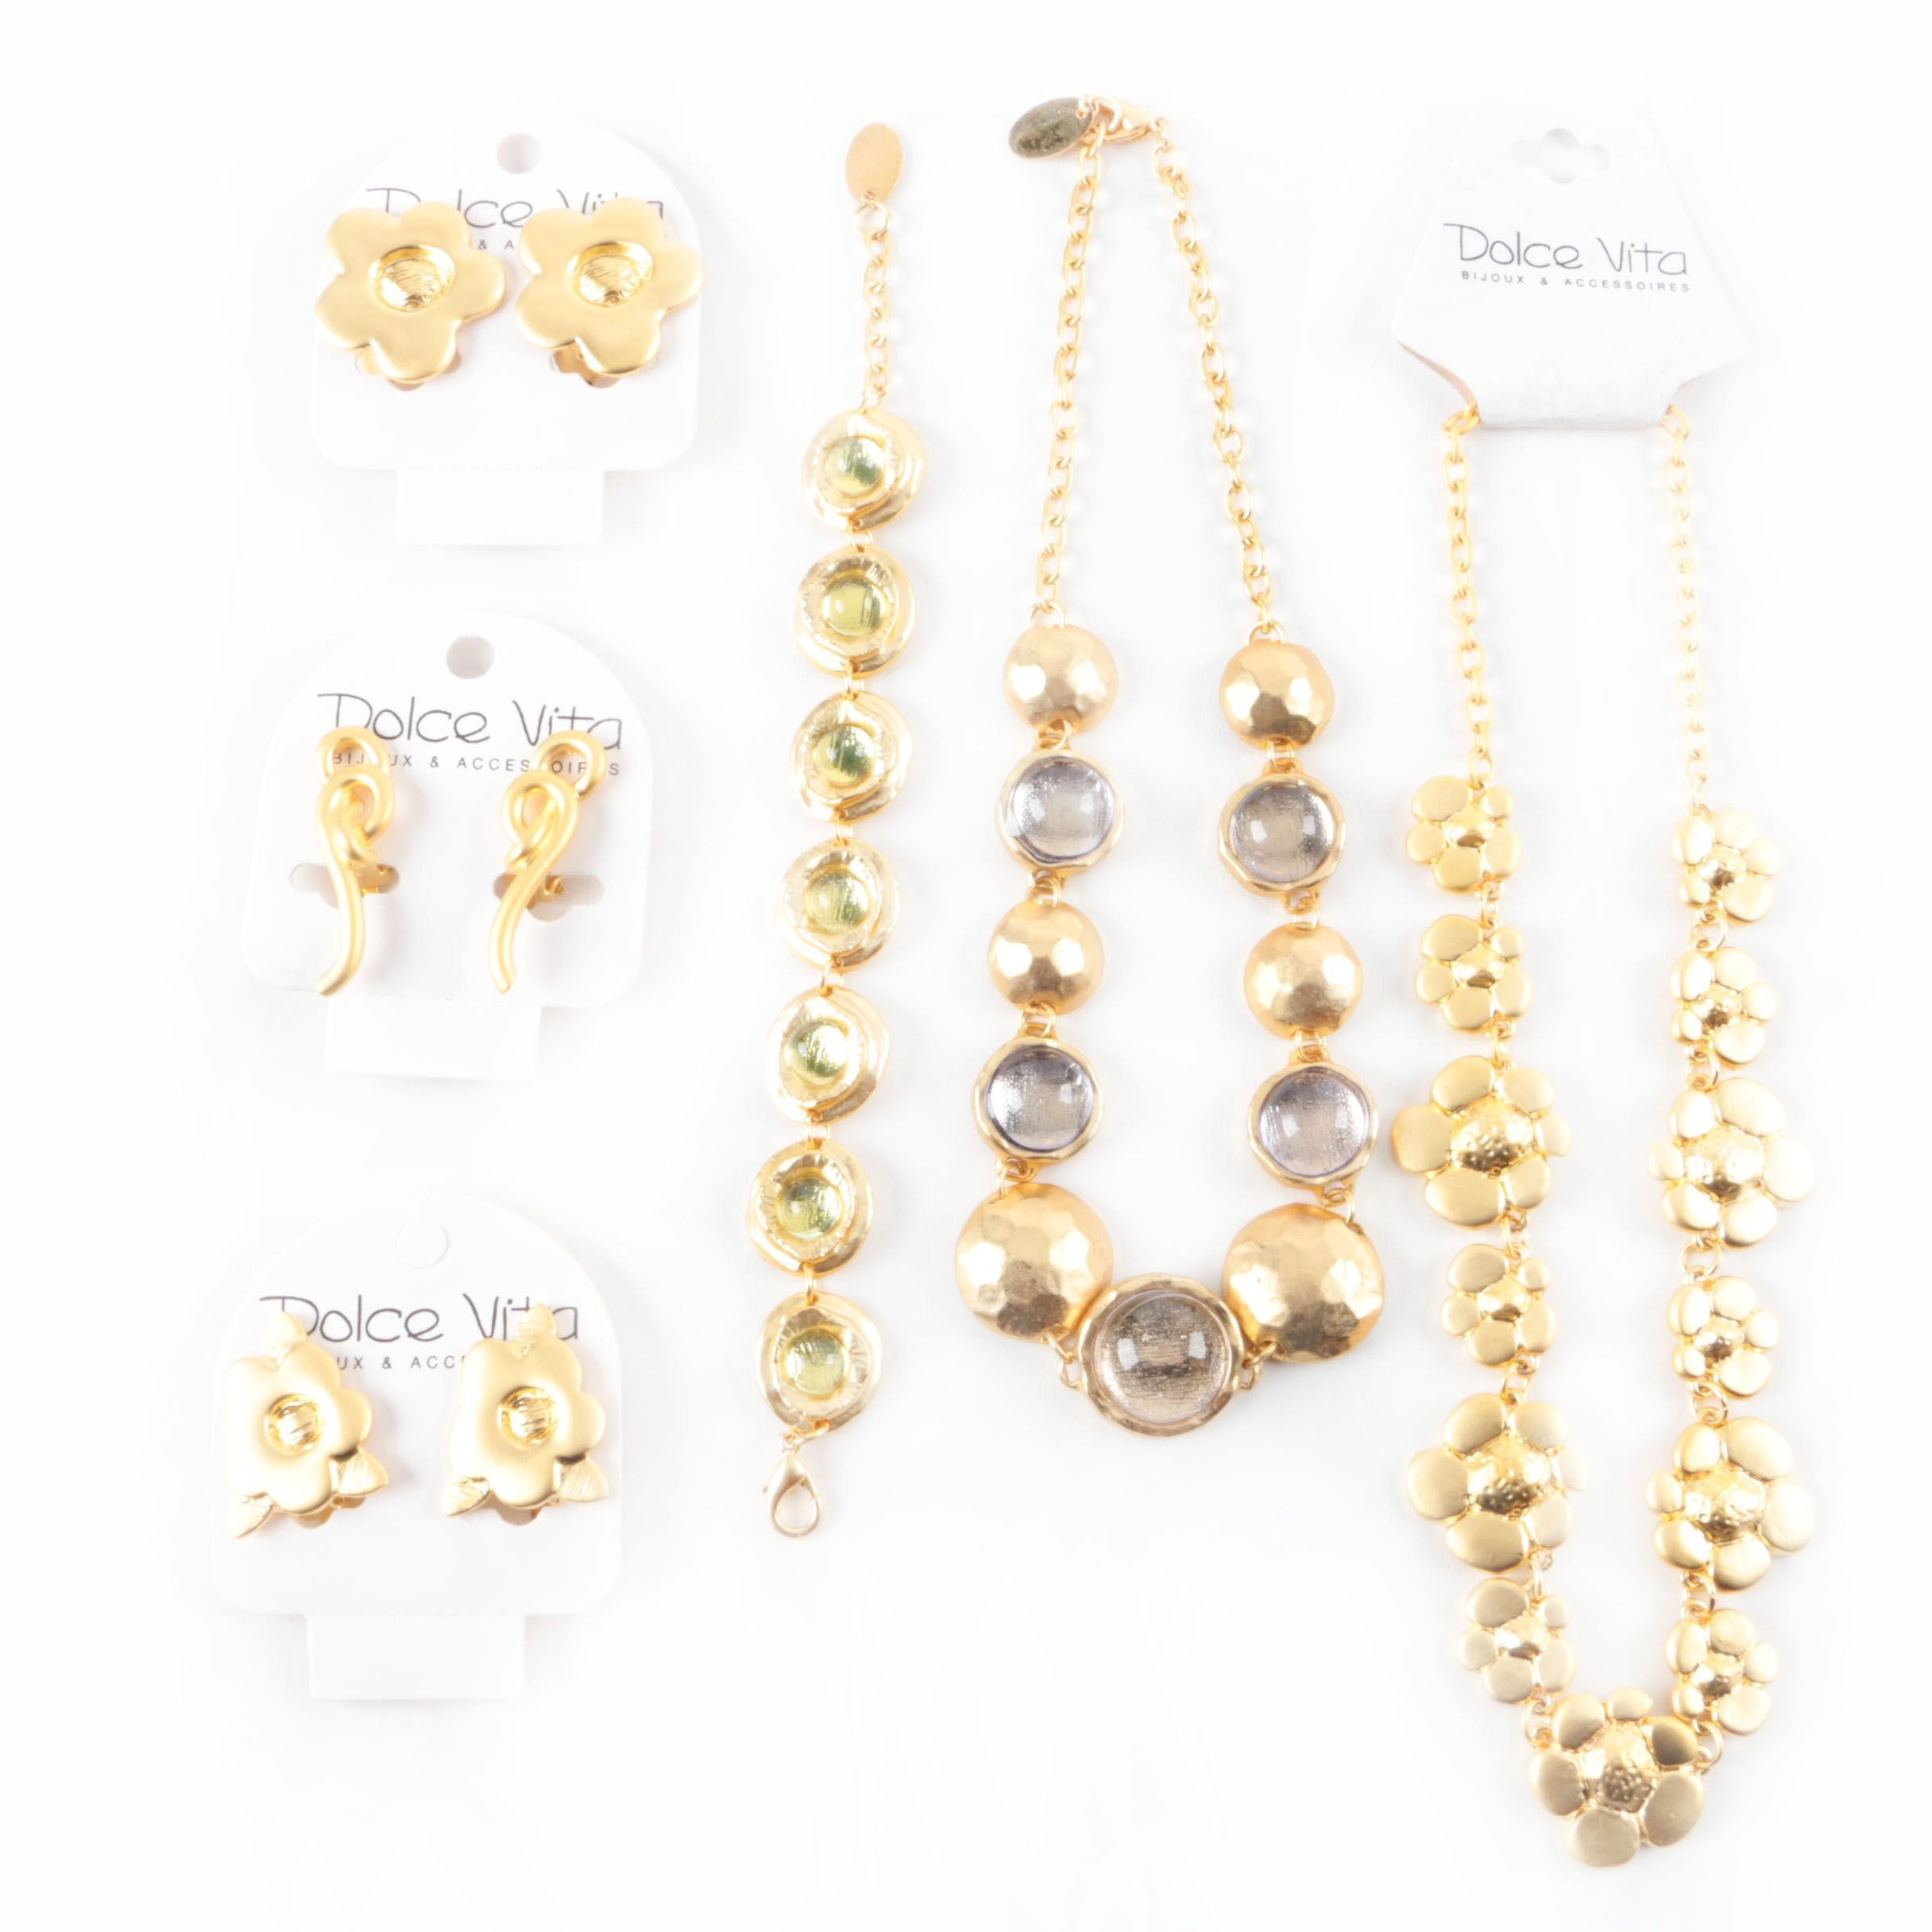 Assortment of Dolce Vita Gold Tone and Glass Bracelet, Necklaces and Earrings